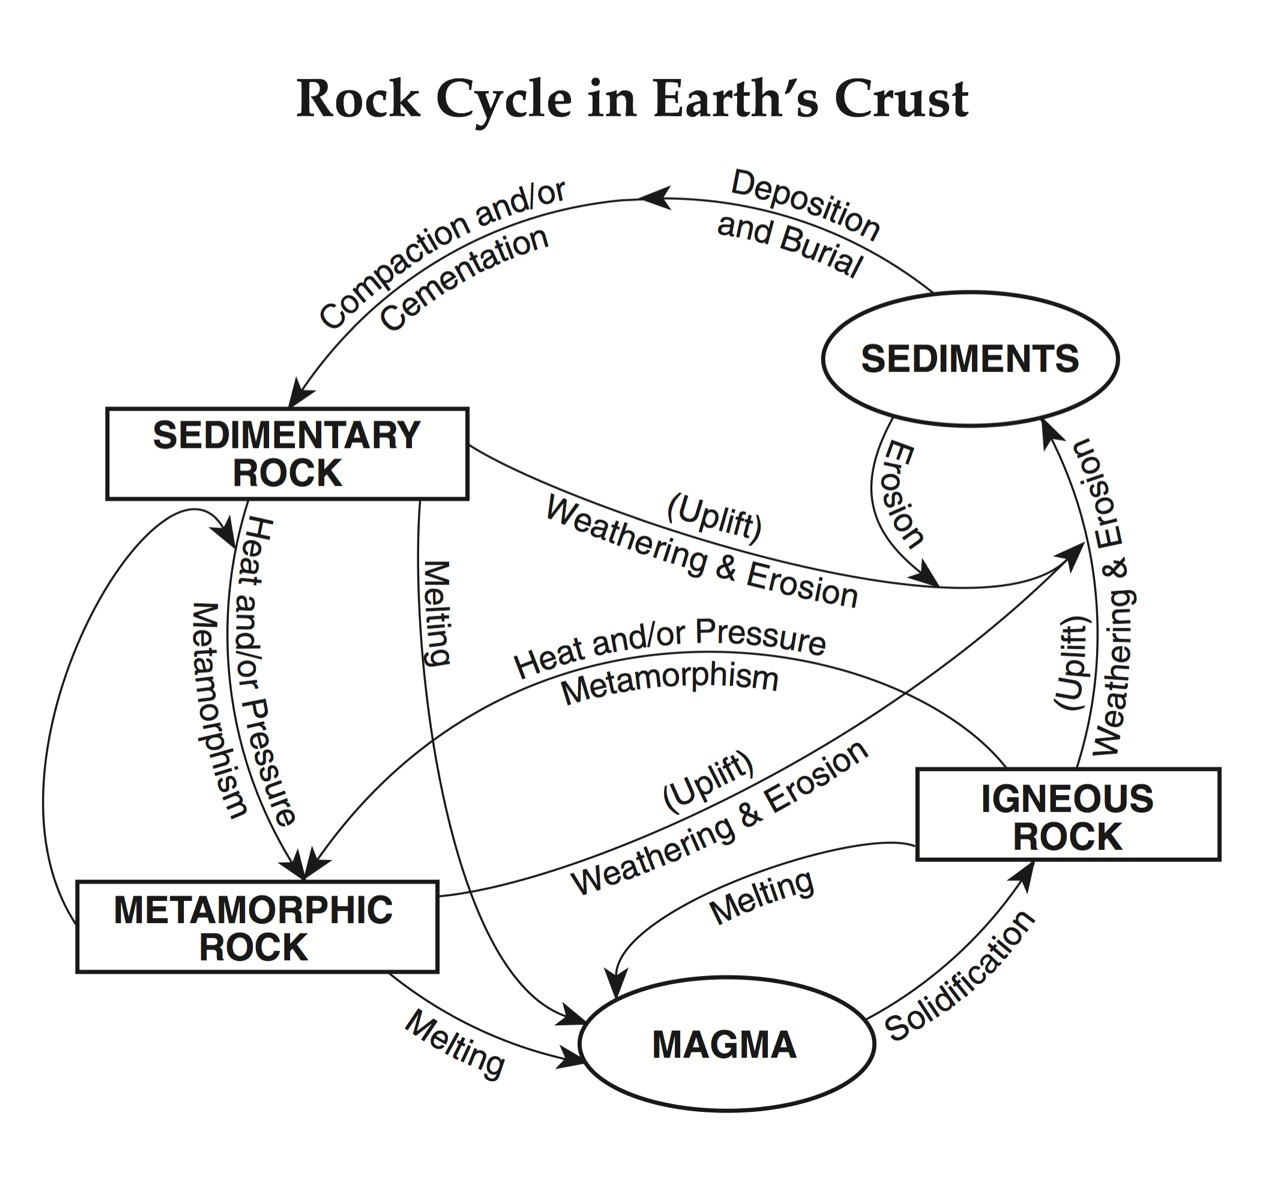 Diagram of earth science rock cycle wiring diagram regents earth science at hommocks middle school rocks and minerals rh hmxearthscience com sedimentary rock formation diagram rock cycle diagram fill in ccuart Images